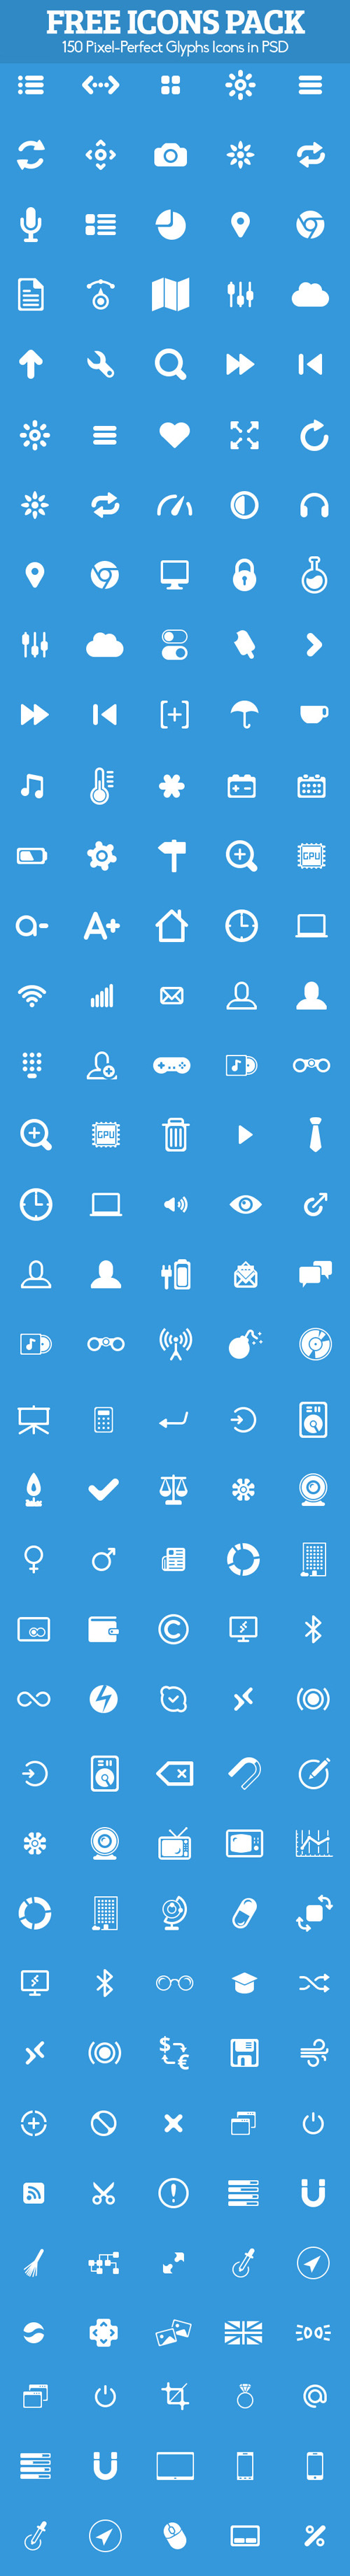 150 Free Glyphs Icons